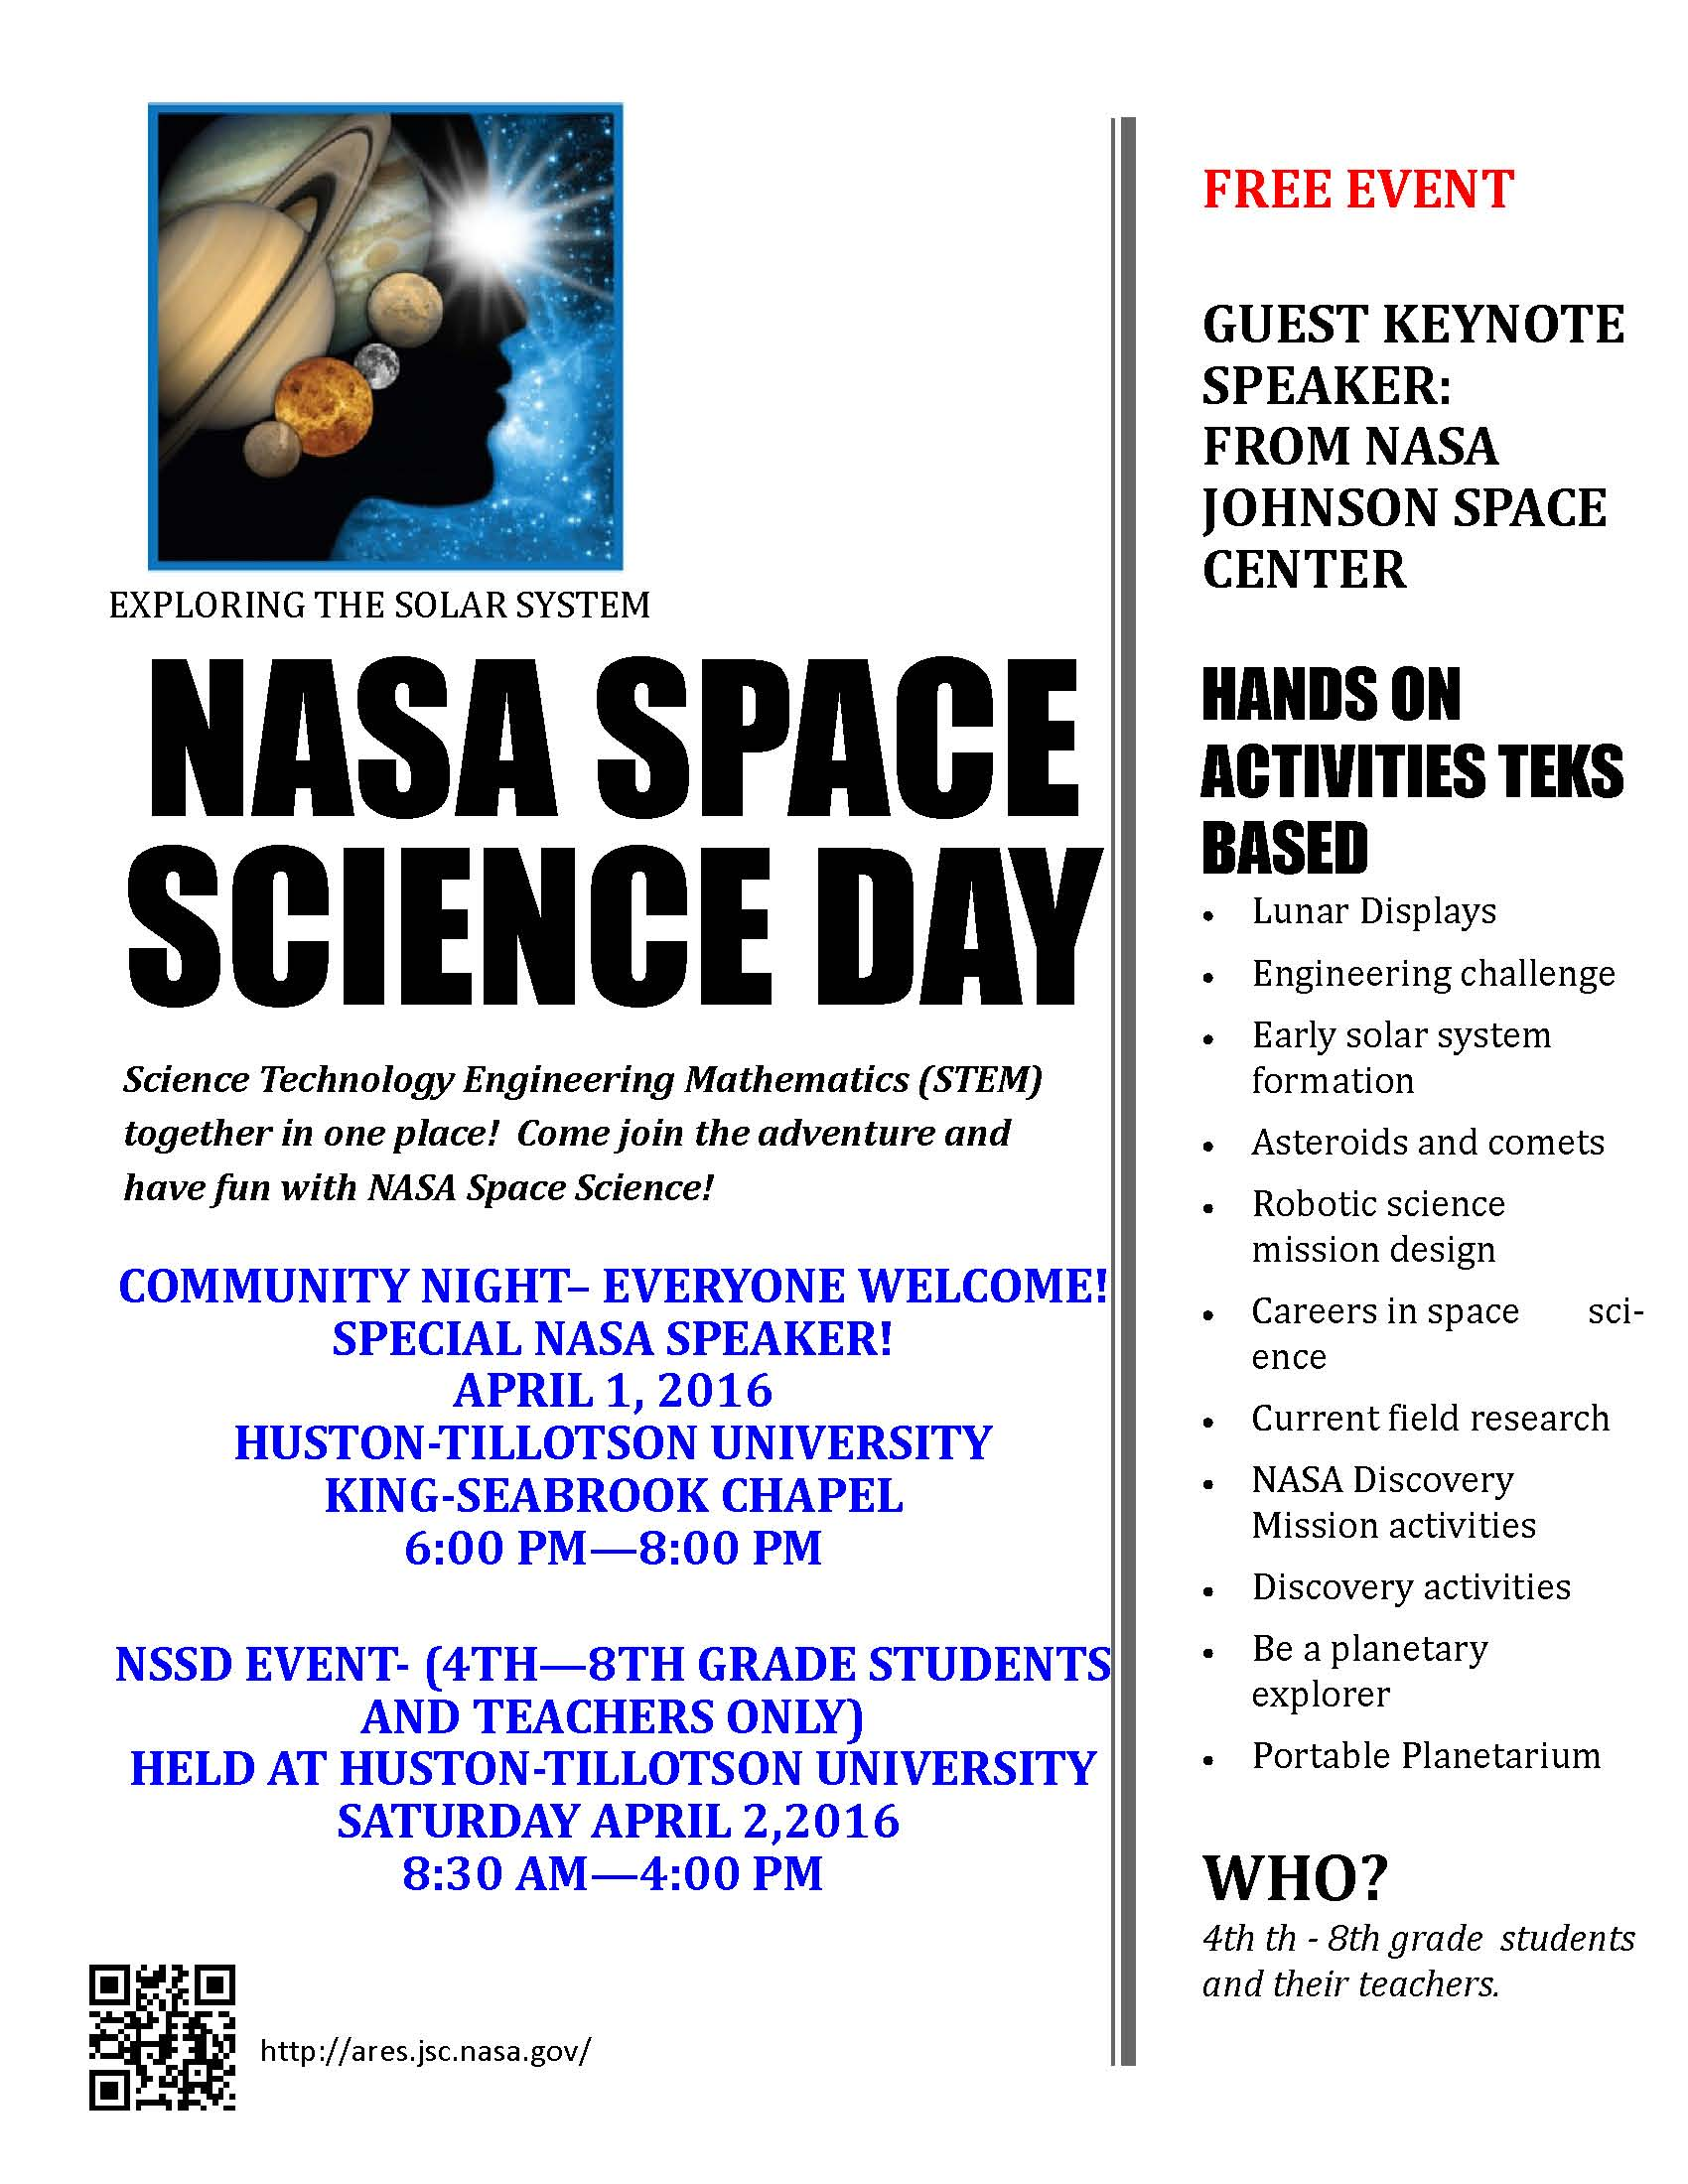 NASA Space Science Day